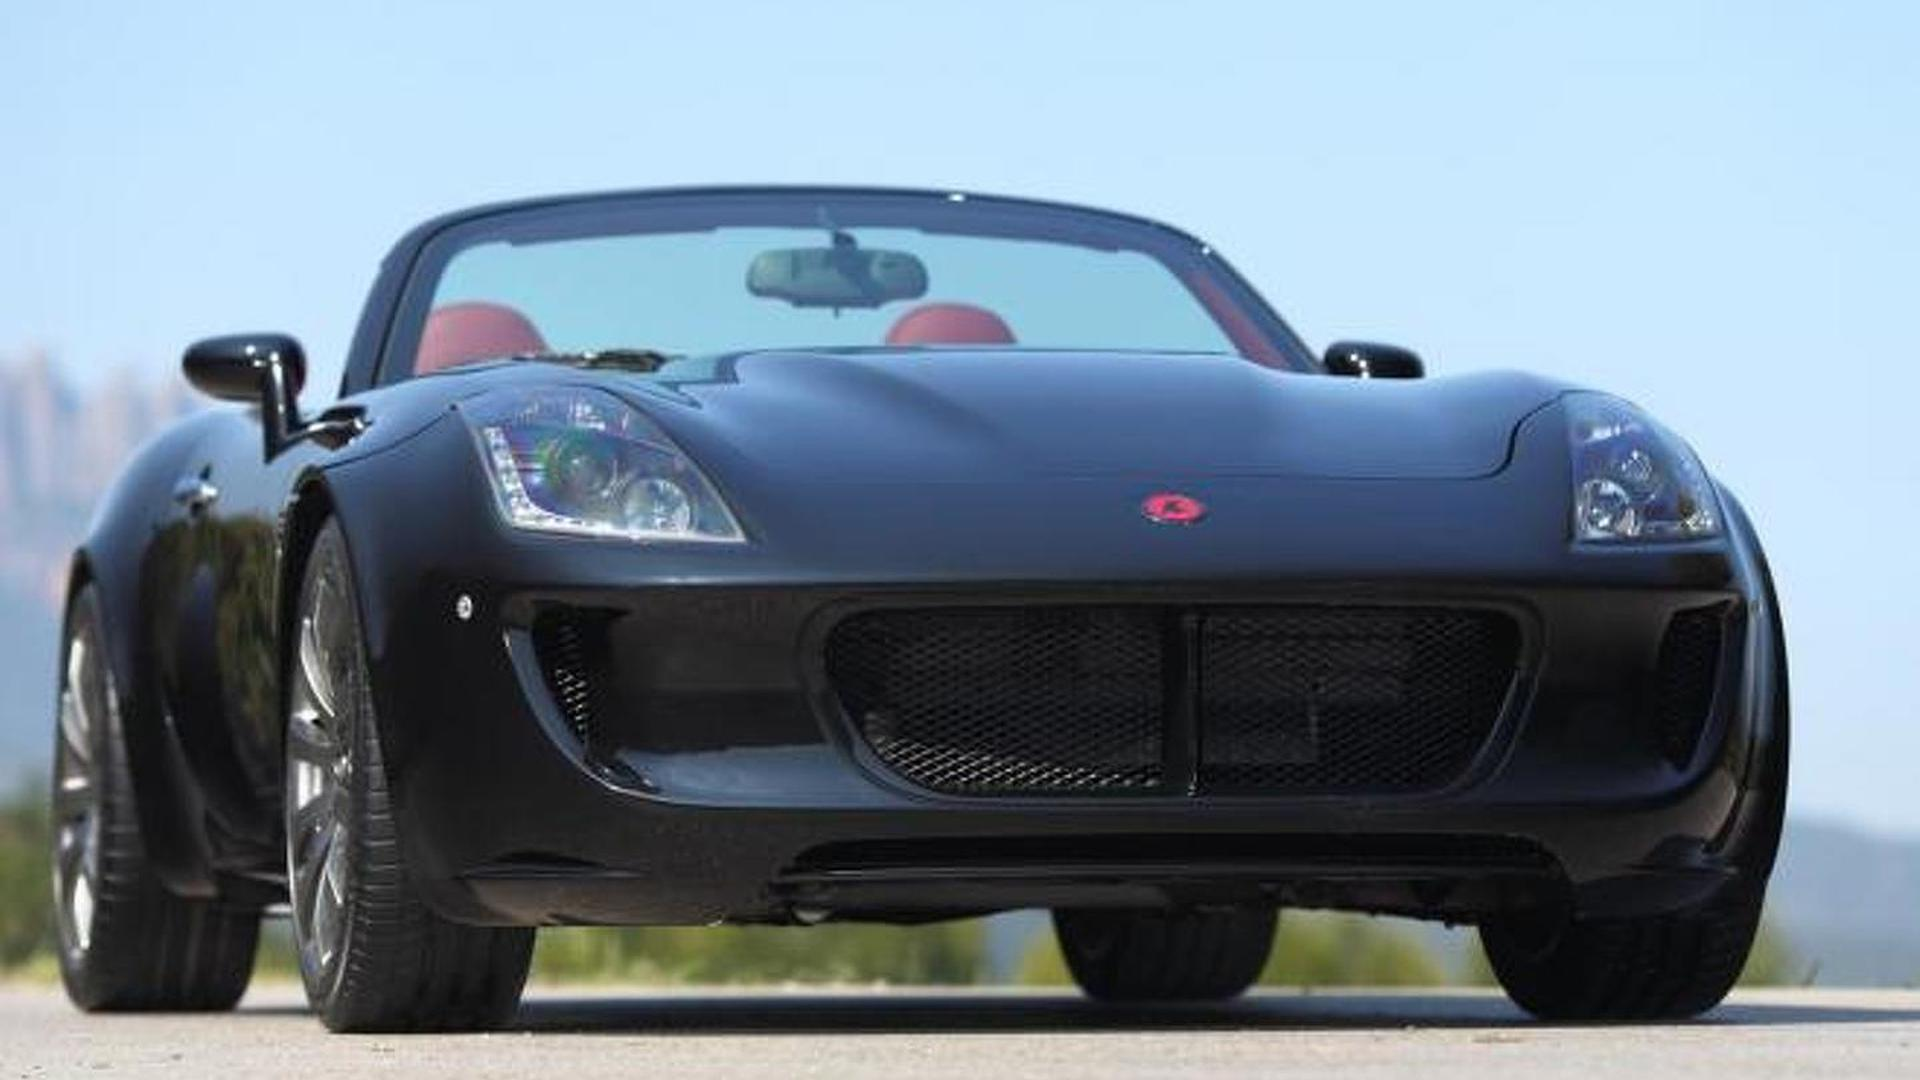 Tauro V8 Spider revealed